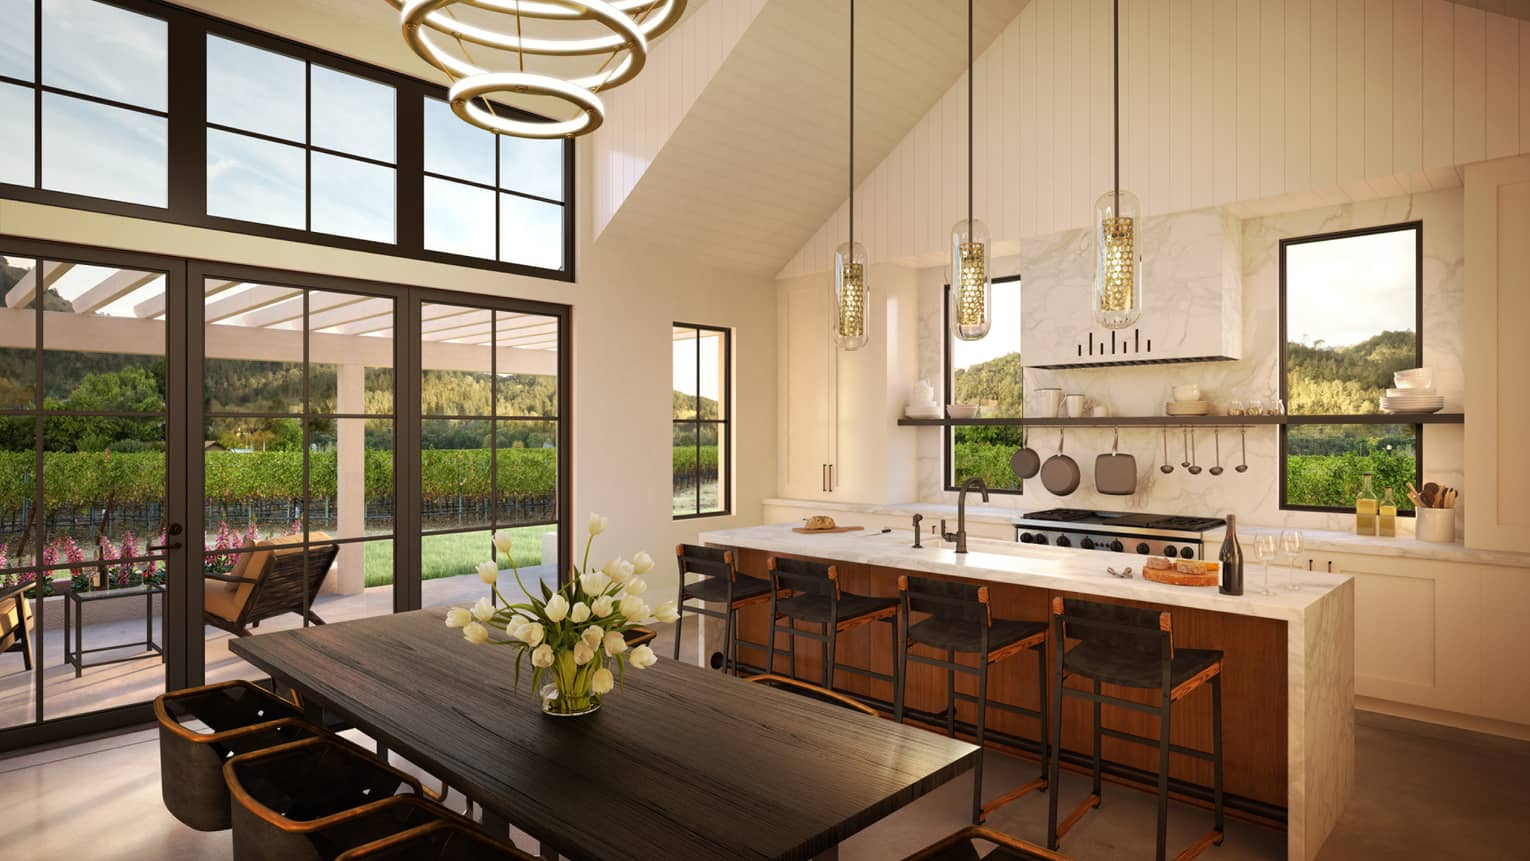 Rendering of open concept residence kitchen and greatroom under tall sloped ceiling, windows